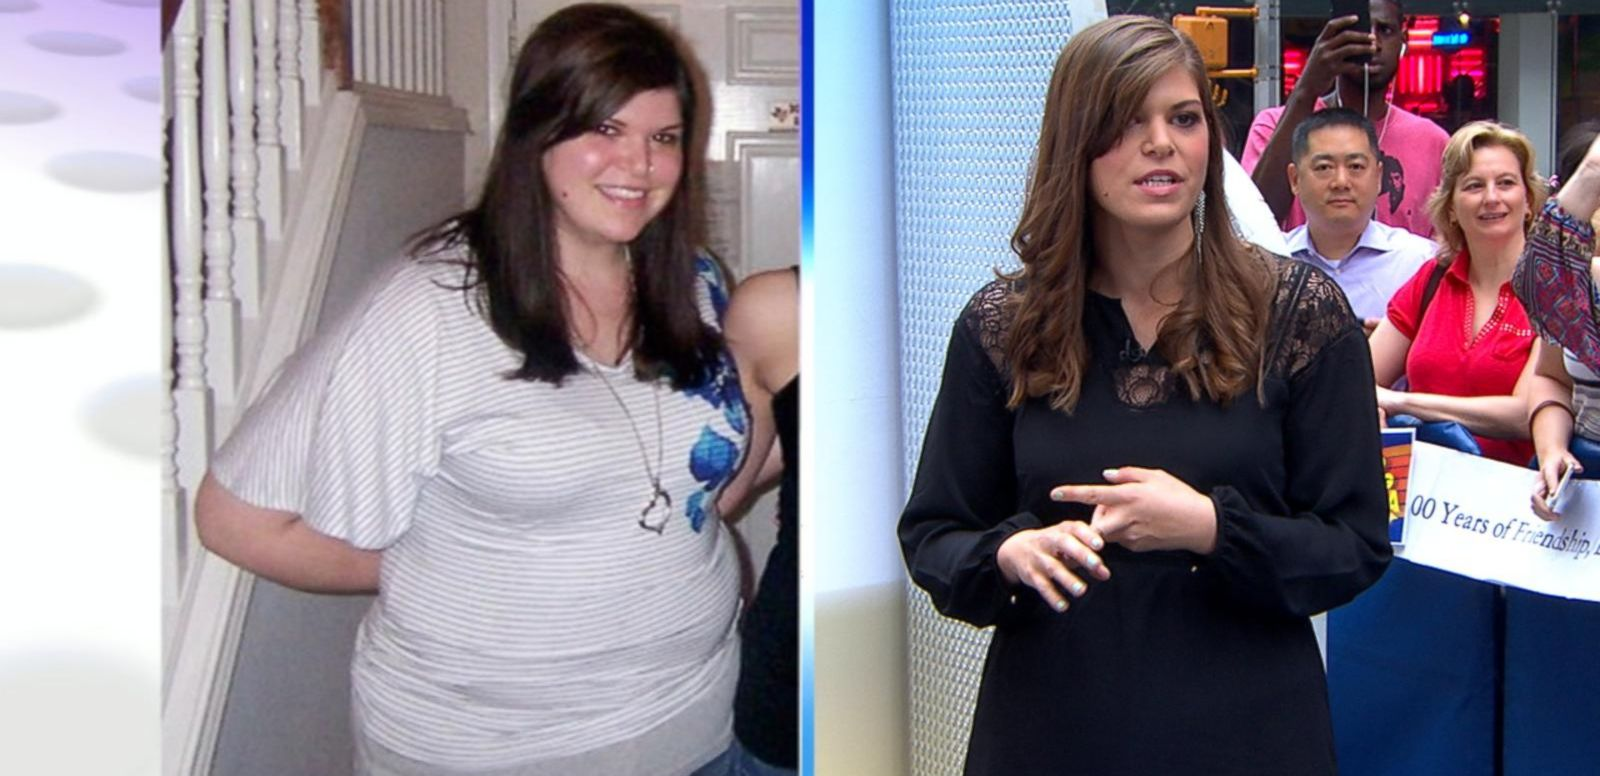 VIDEO: A Woman's Incredible Weight-Loss Story